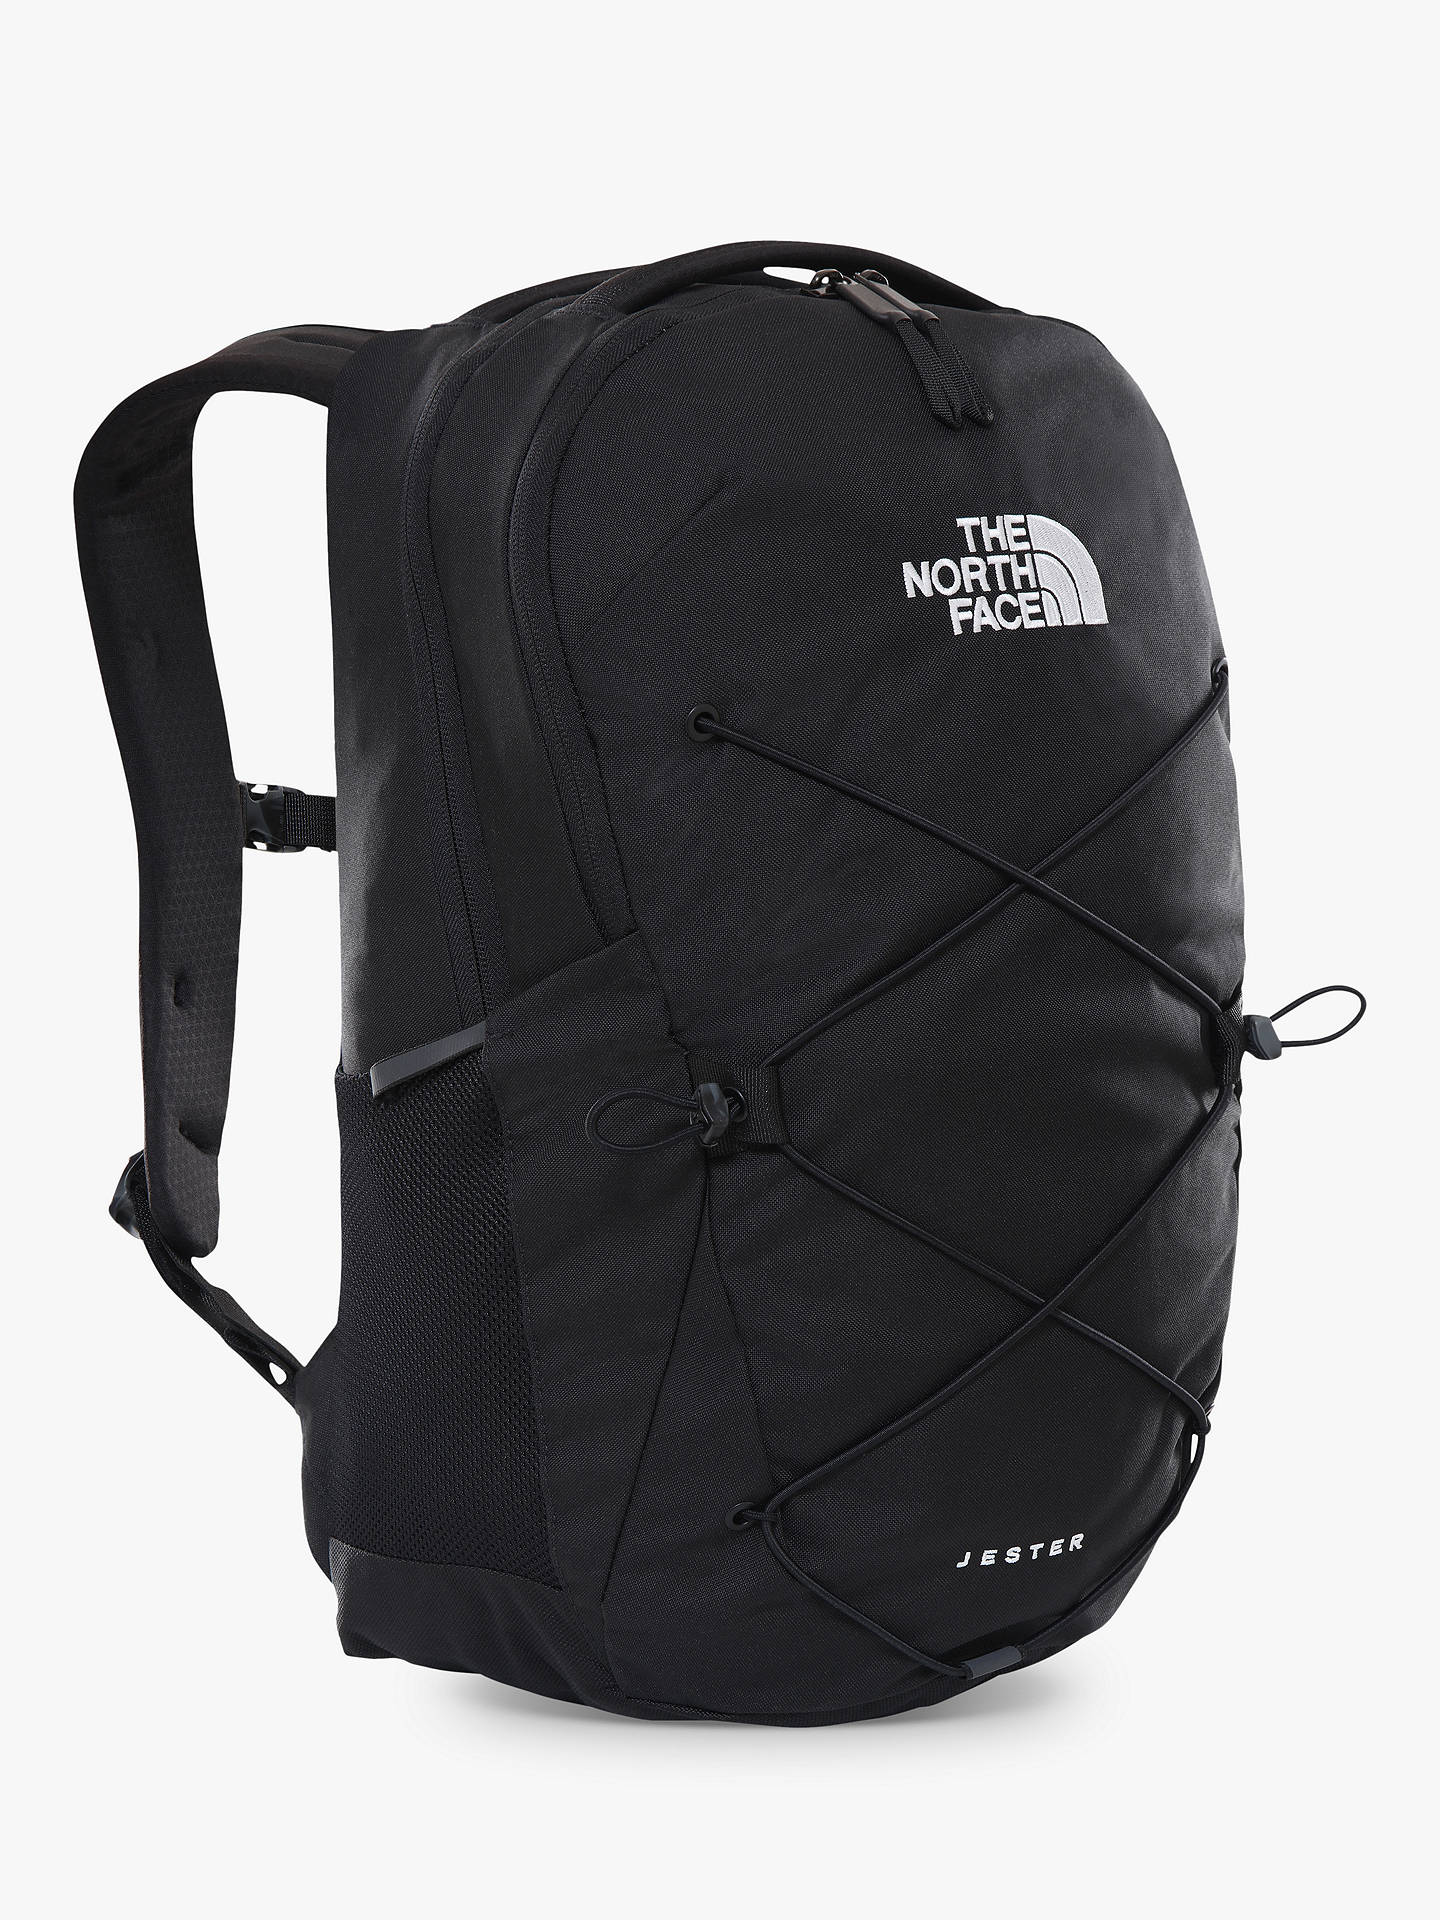 77c3287644 Buy The North Face Jester Day Backpack, Black Online at johnlewis.com ...